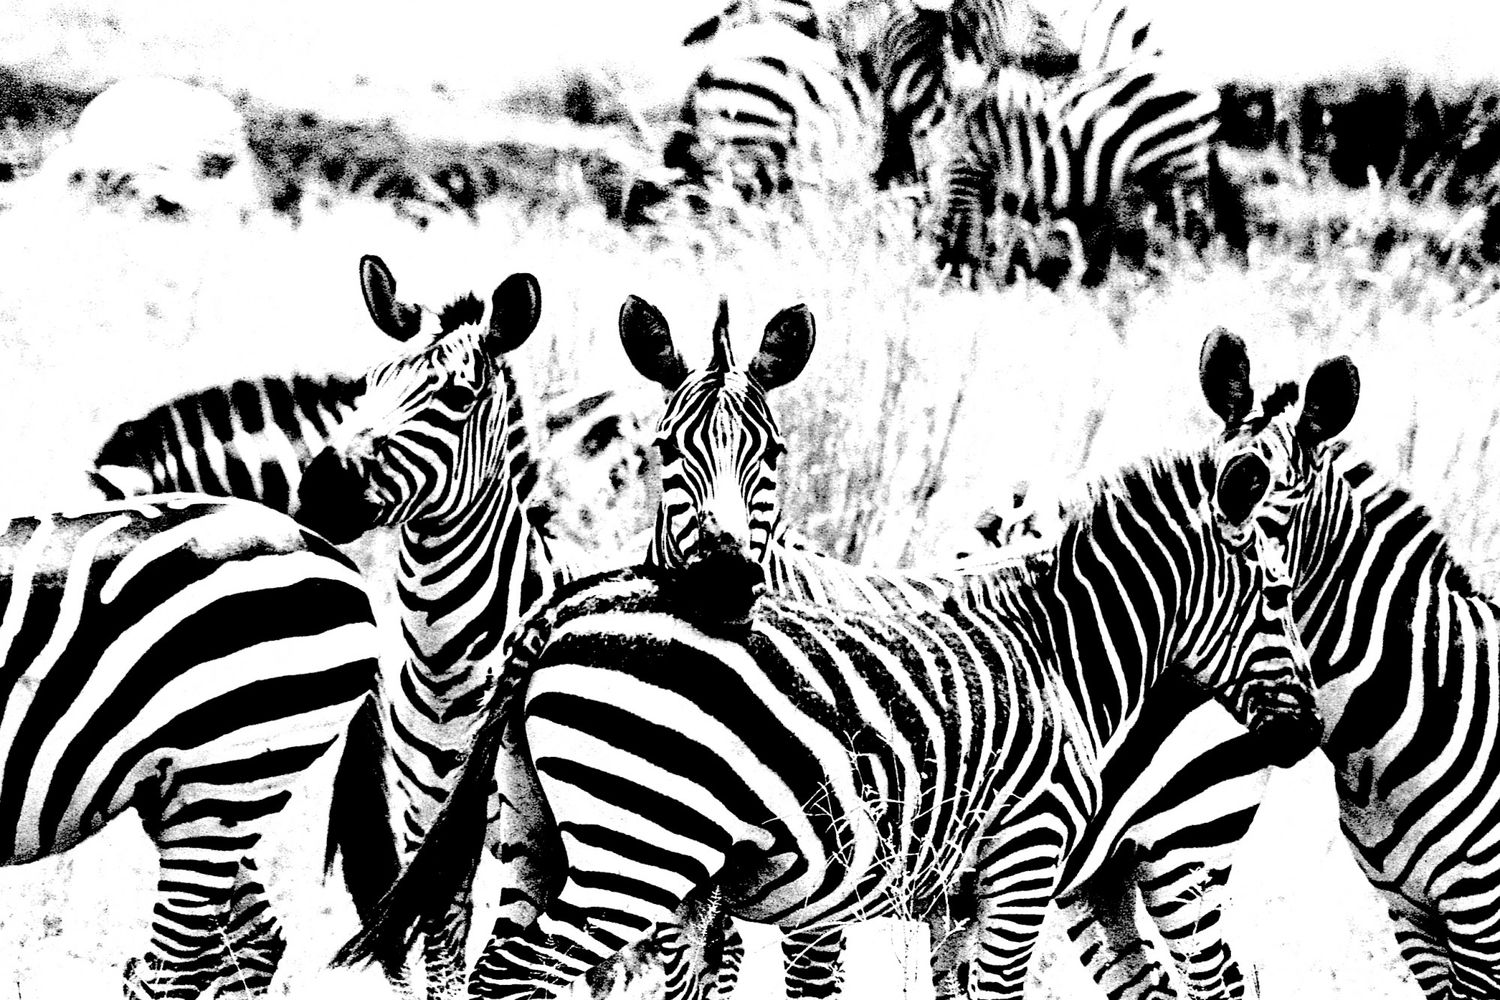 Zebra - 8, Serengeti 2016   Edition 1 of 2